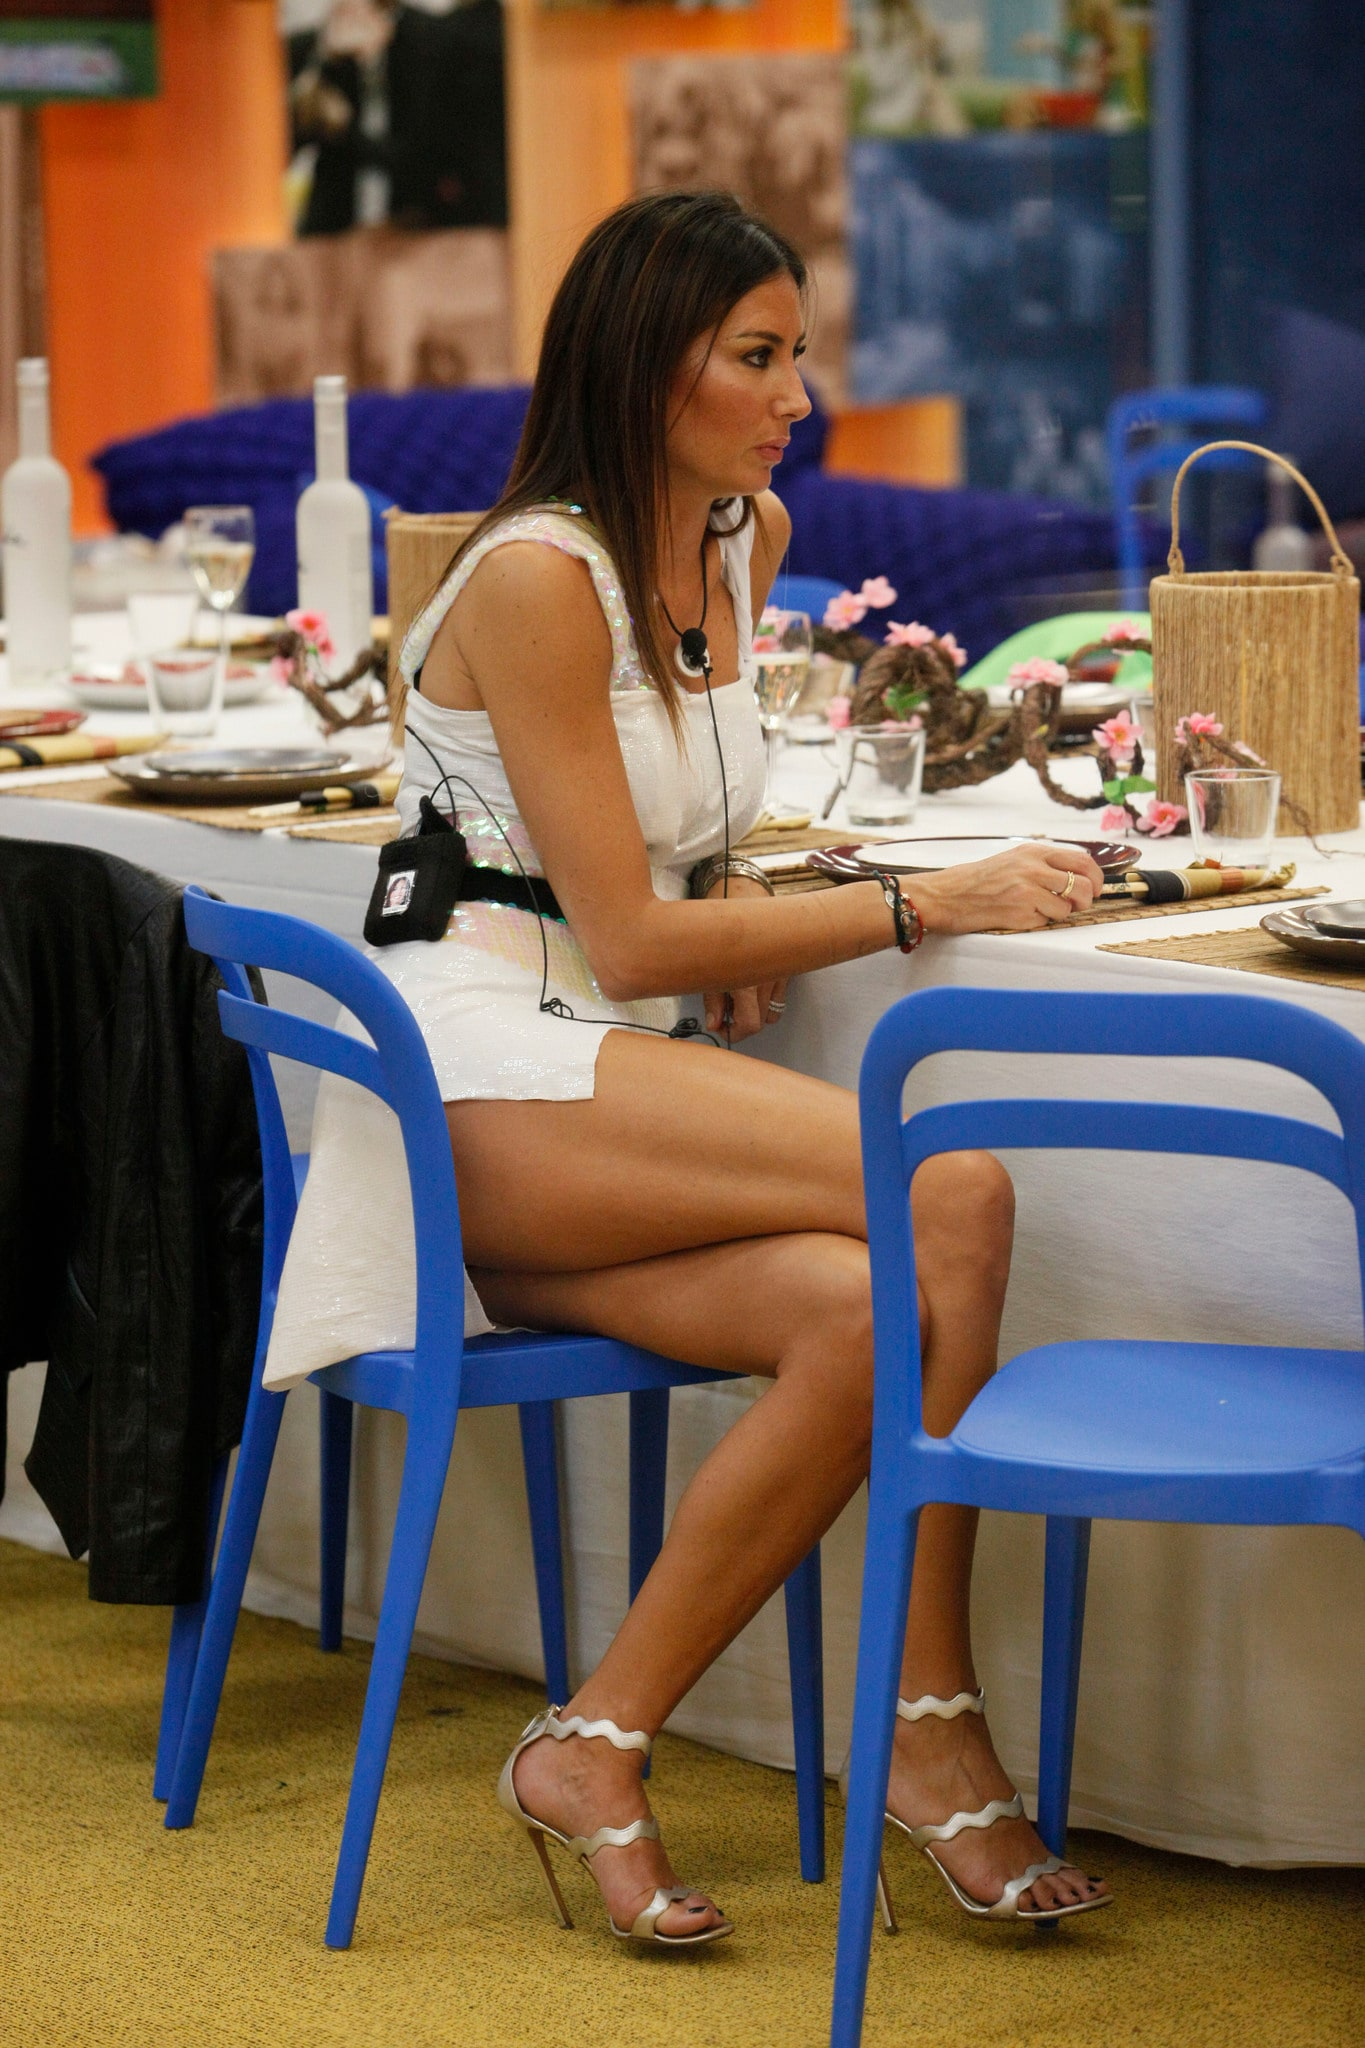 Elisabetta Gregoraci, the skirt that is too short gives her away